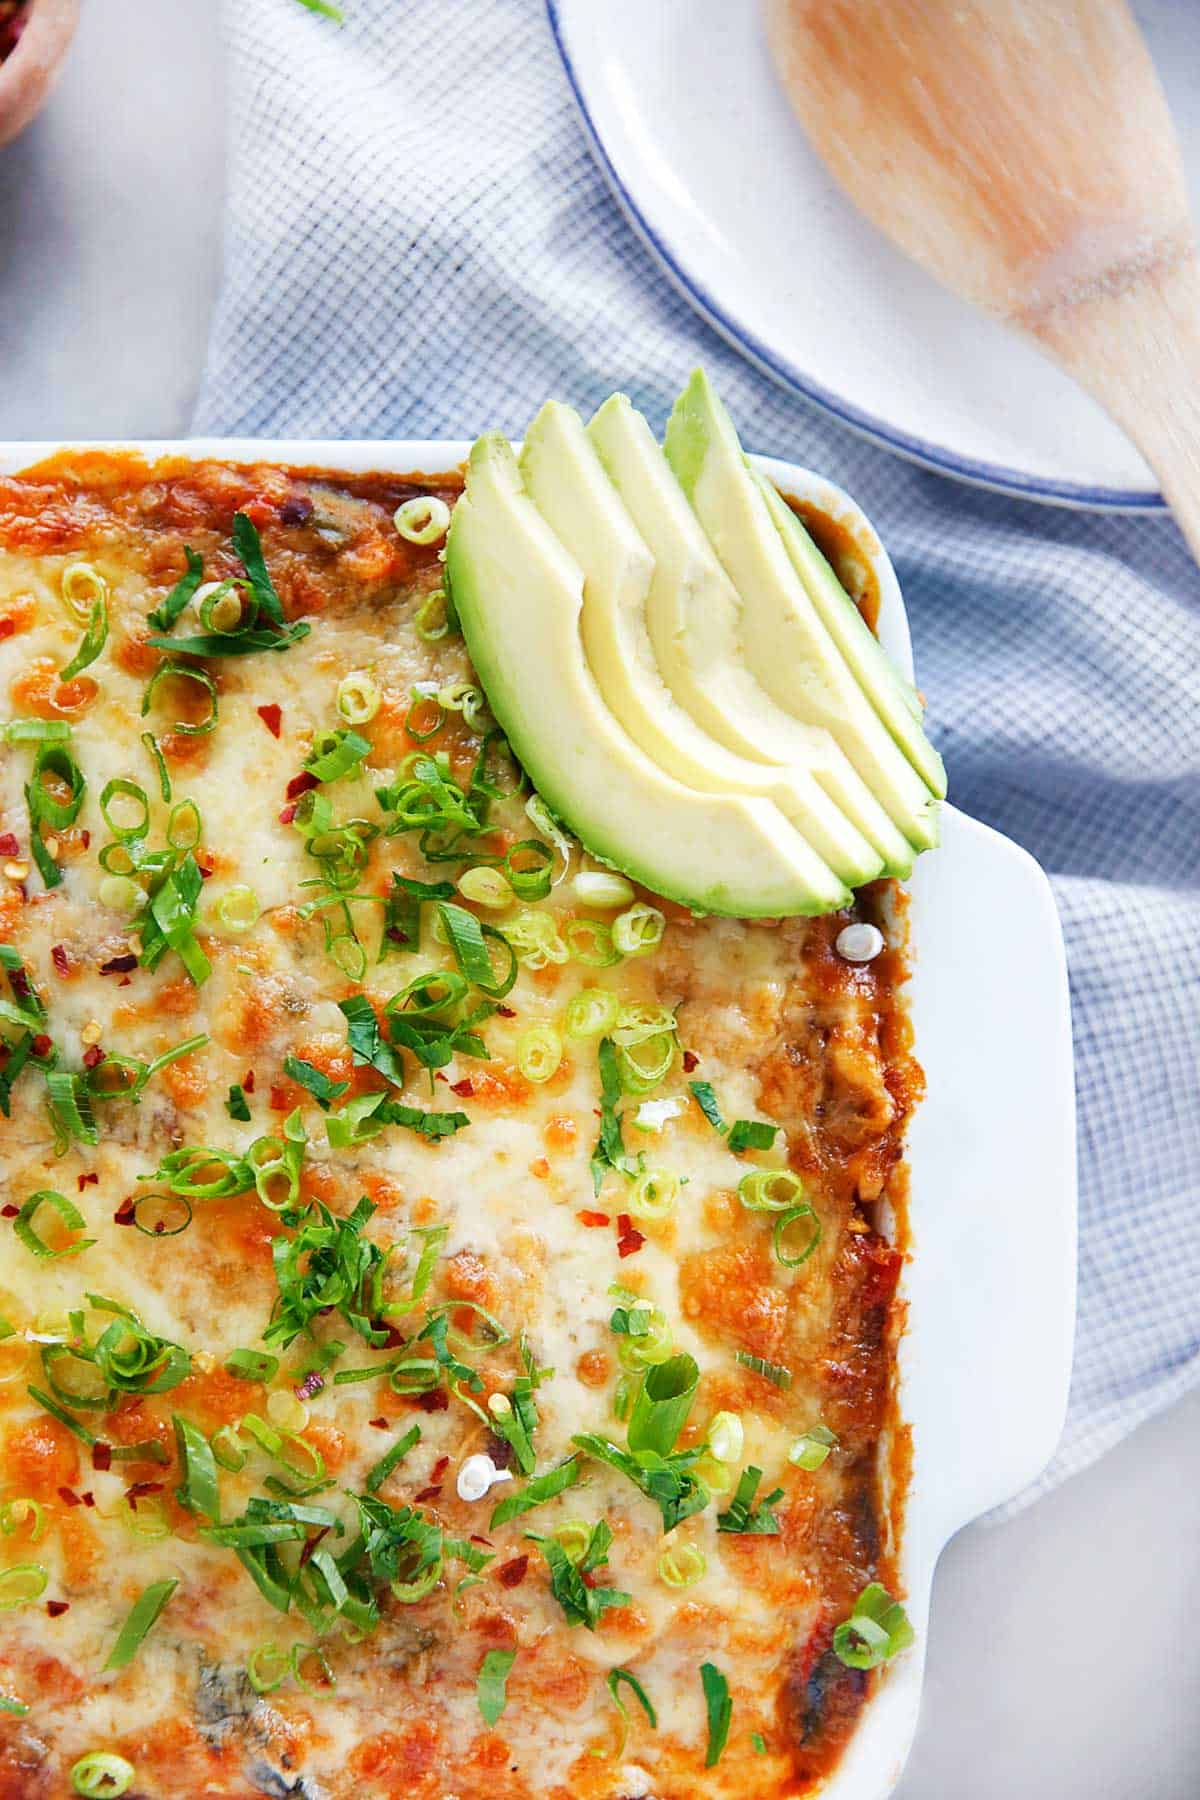 Cheesy top of casserole with avocado slices